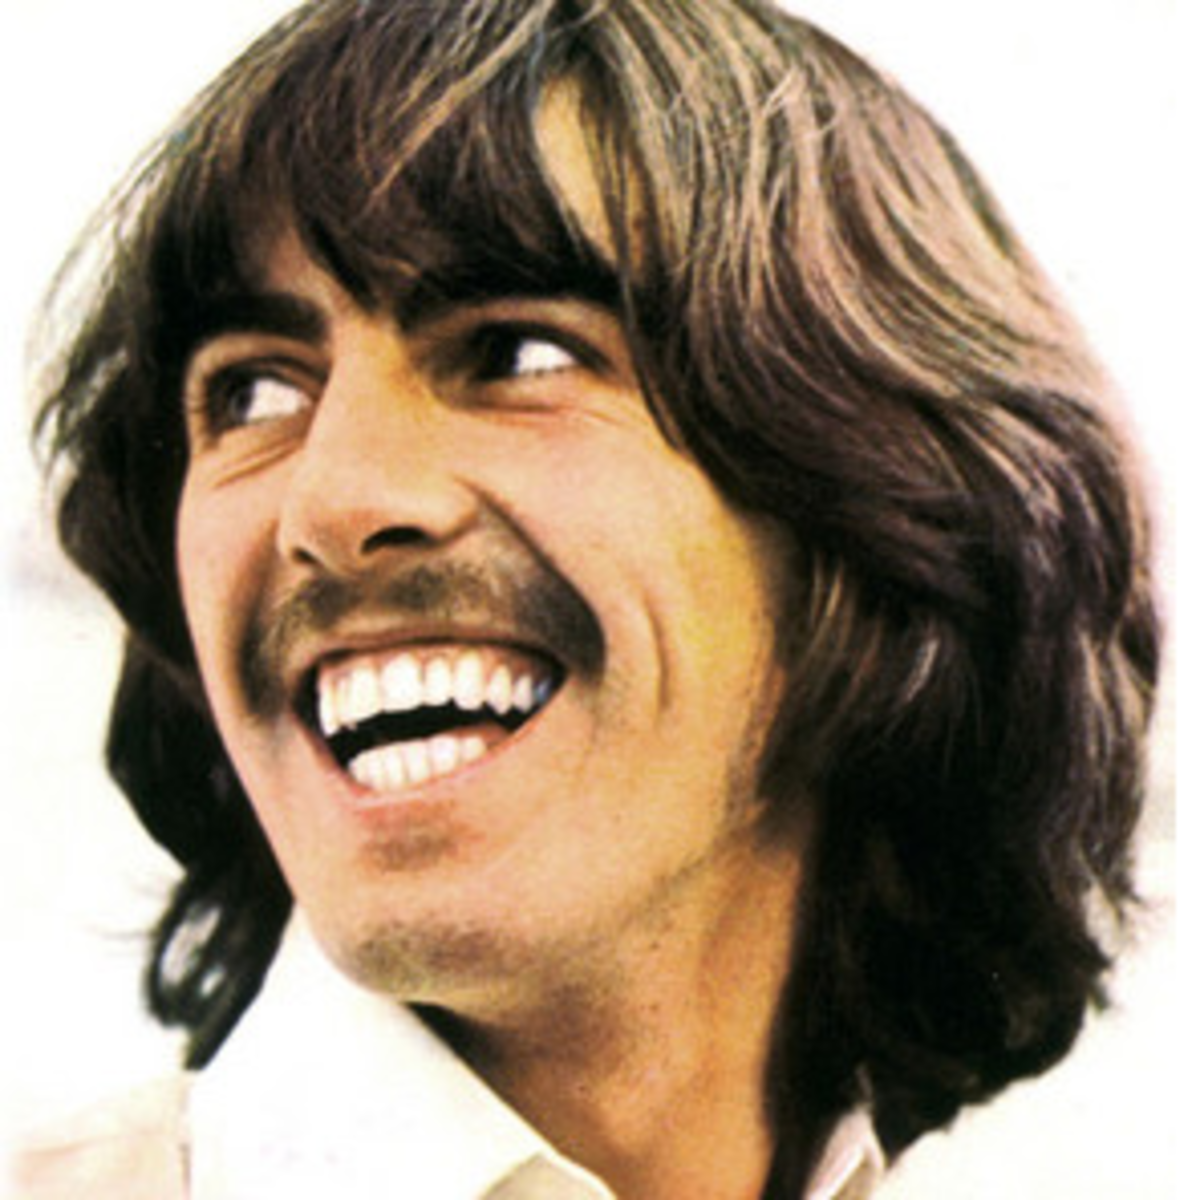 George Harrison: The Most Spiritual Beatle